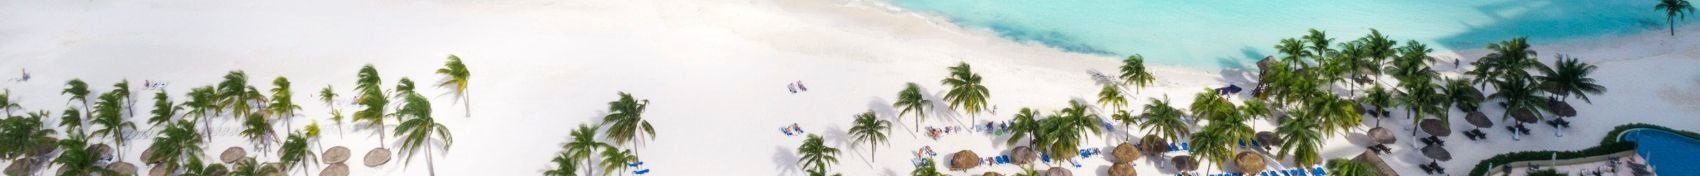 Beachscape Kin Ha Villas & Suites Cancún -